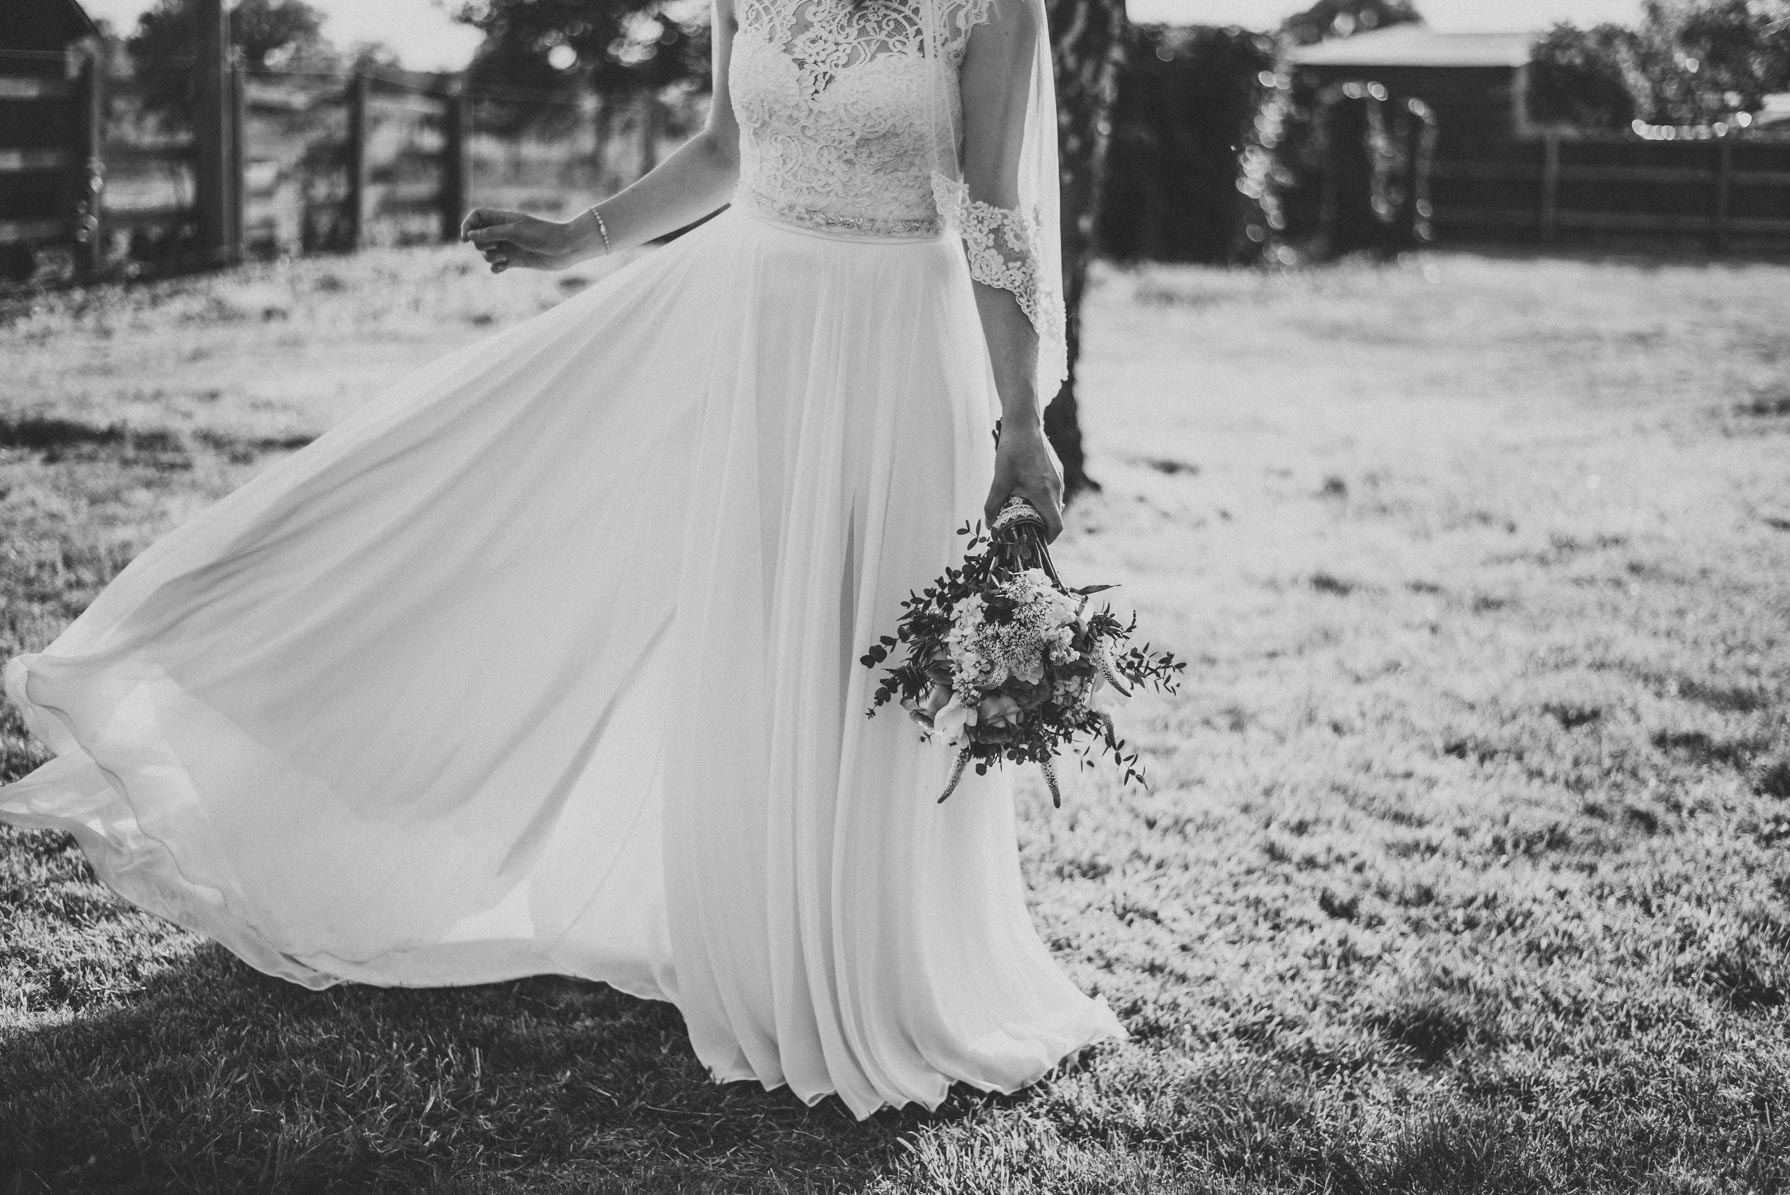 black and white image of a bride twirling in her wedding dress on the grass